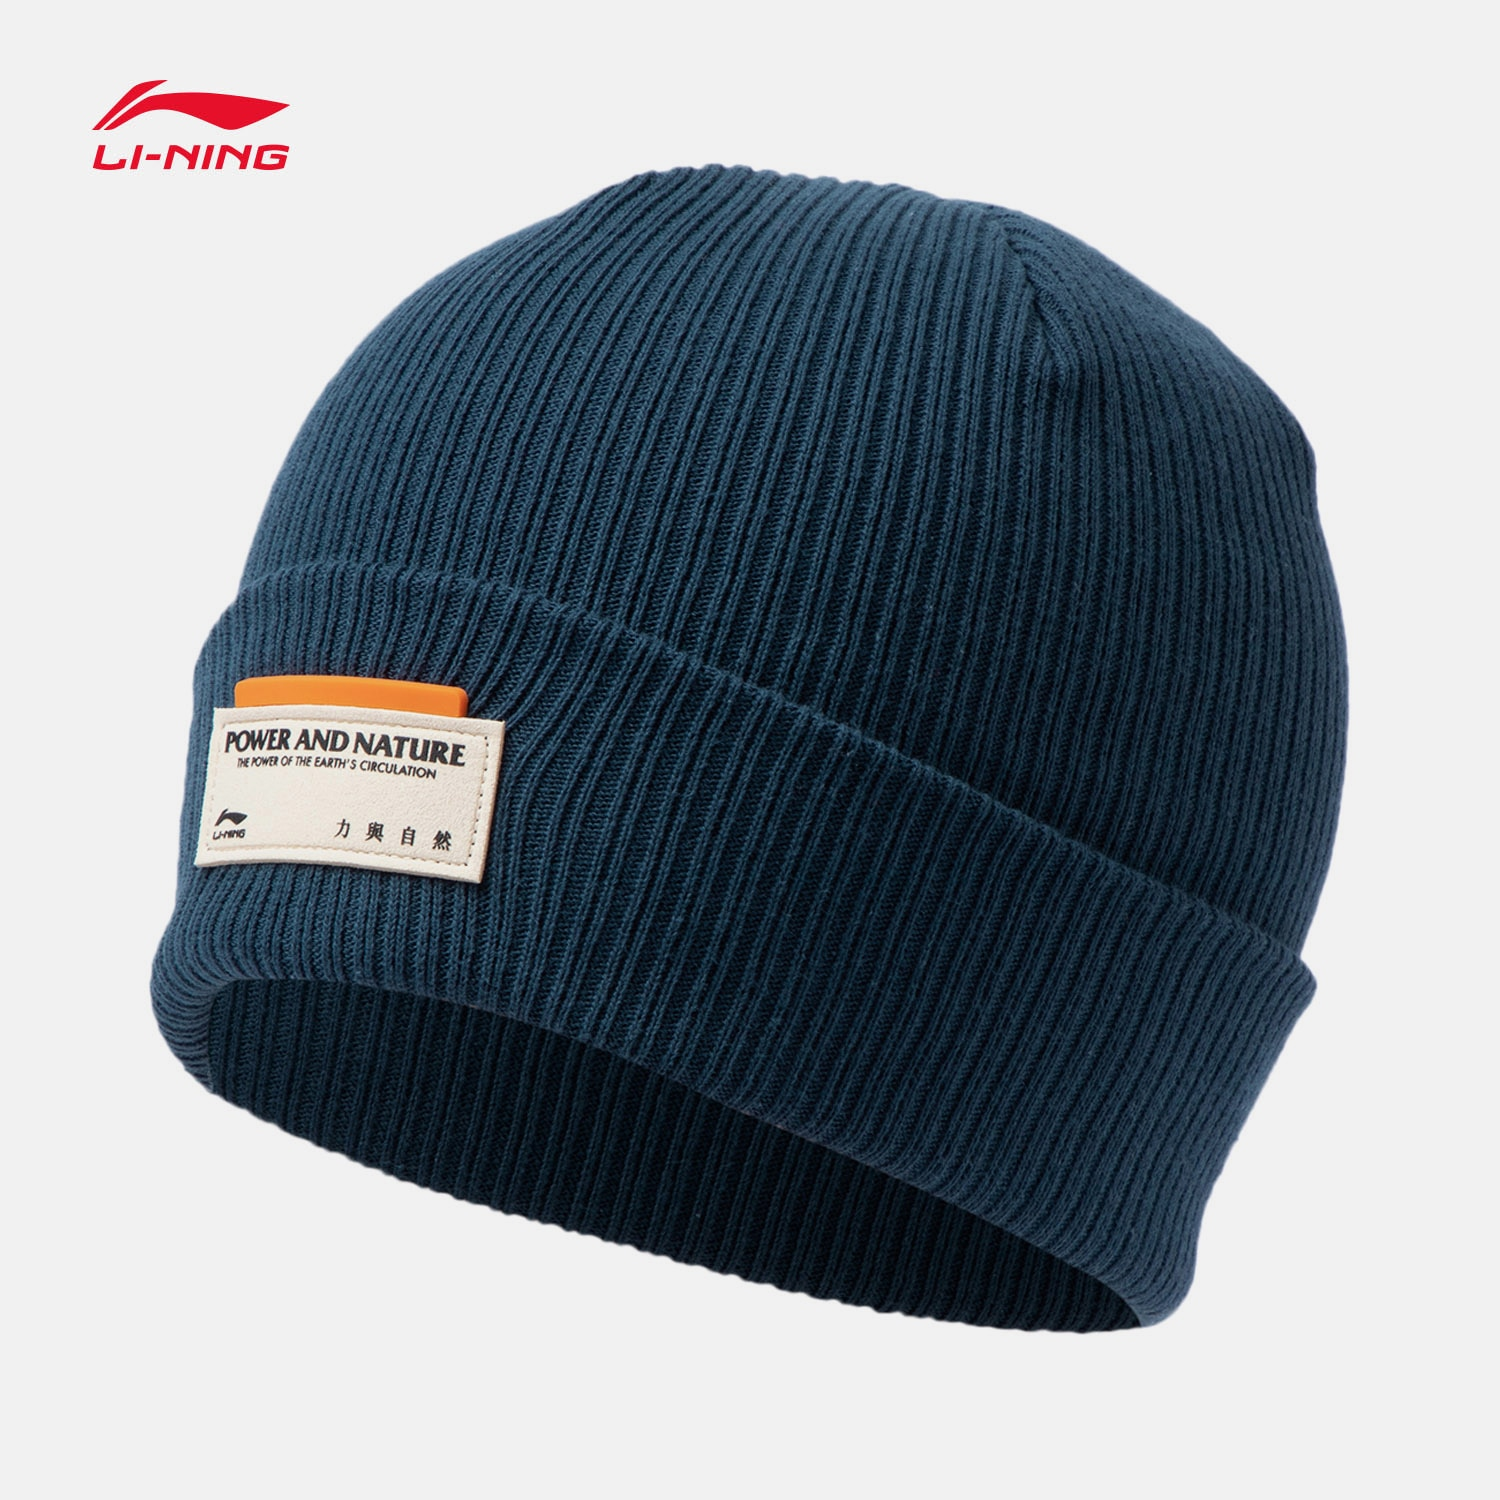 Knitted Hat Men's and Women's Same New Sports Life Series Sports Cap Amzr128 wool hat  womens hats